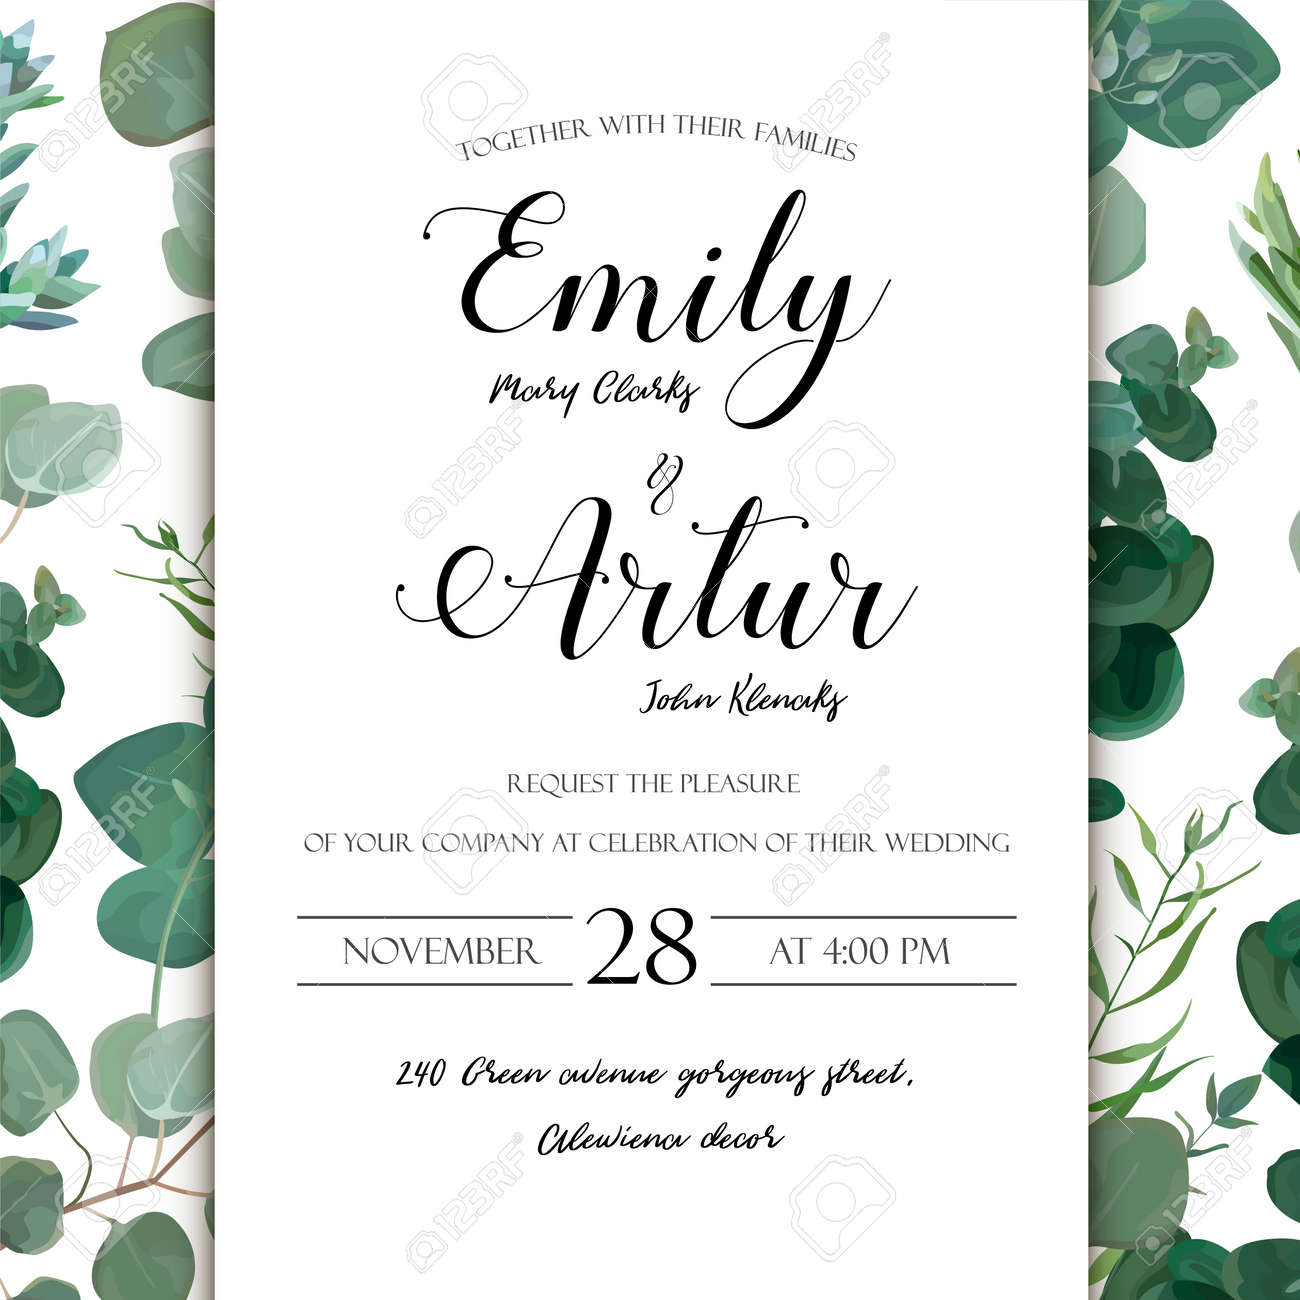 Wedding floral hand drawn invite invitation card design eucalyptus vector wedding floral hand drawn invite invitation card design eucalyptus silver succulent cactus greenery natural leaves watercolor rustic elegant stopboris Image collections